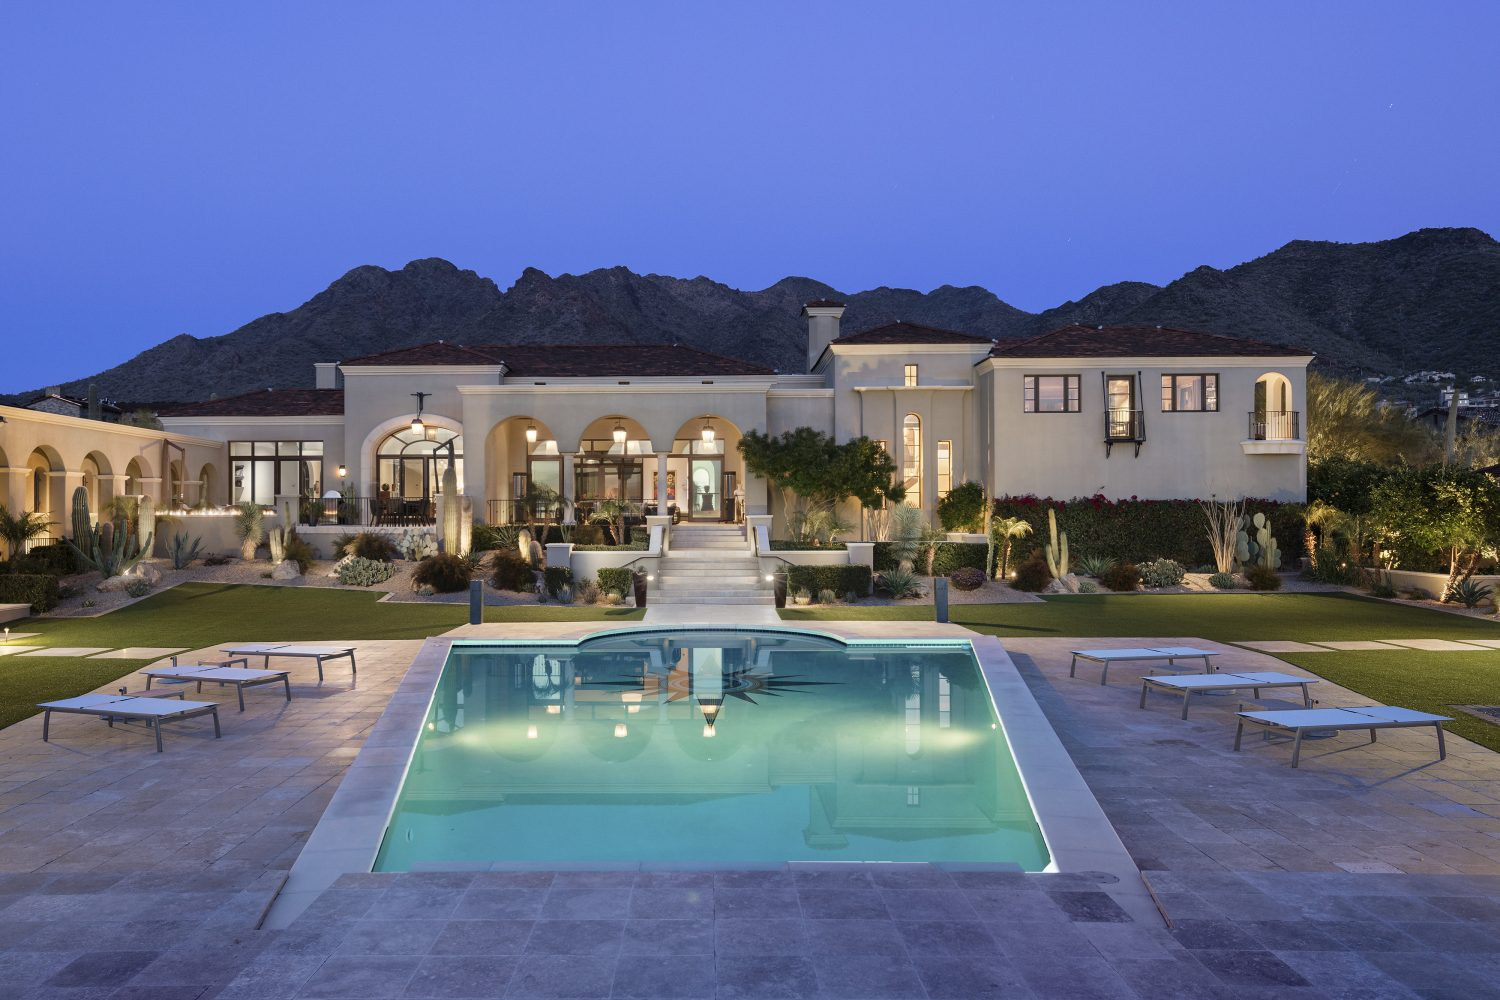 Silverleaf Realty Closes On Home With Record Price In